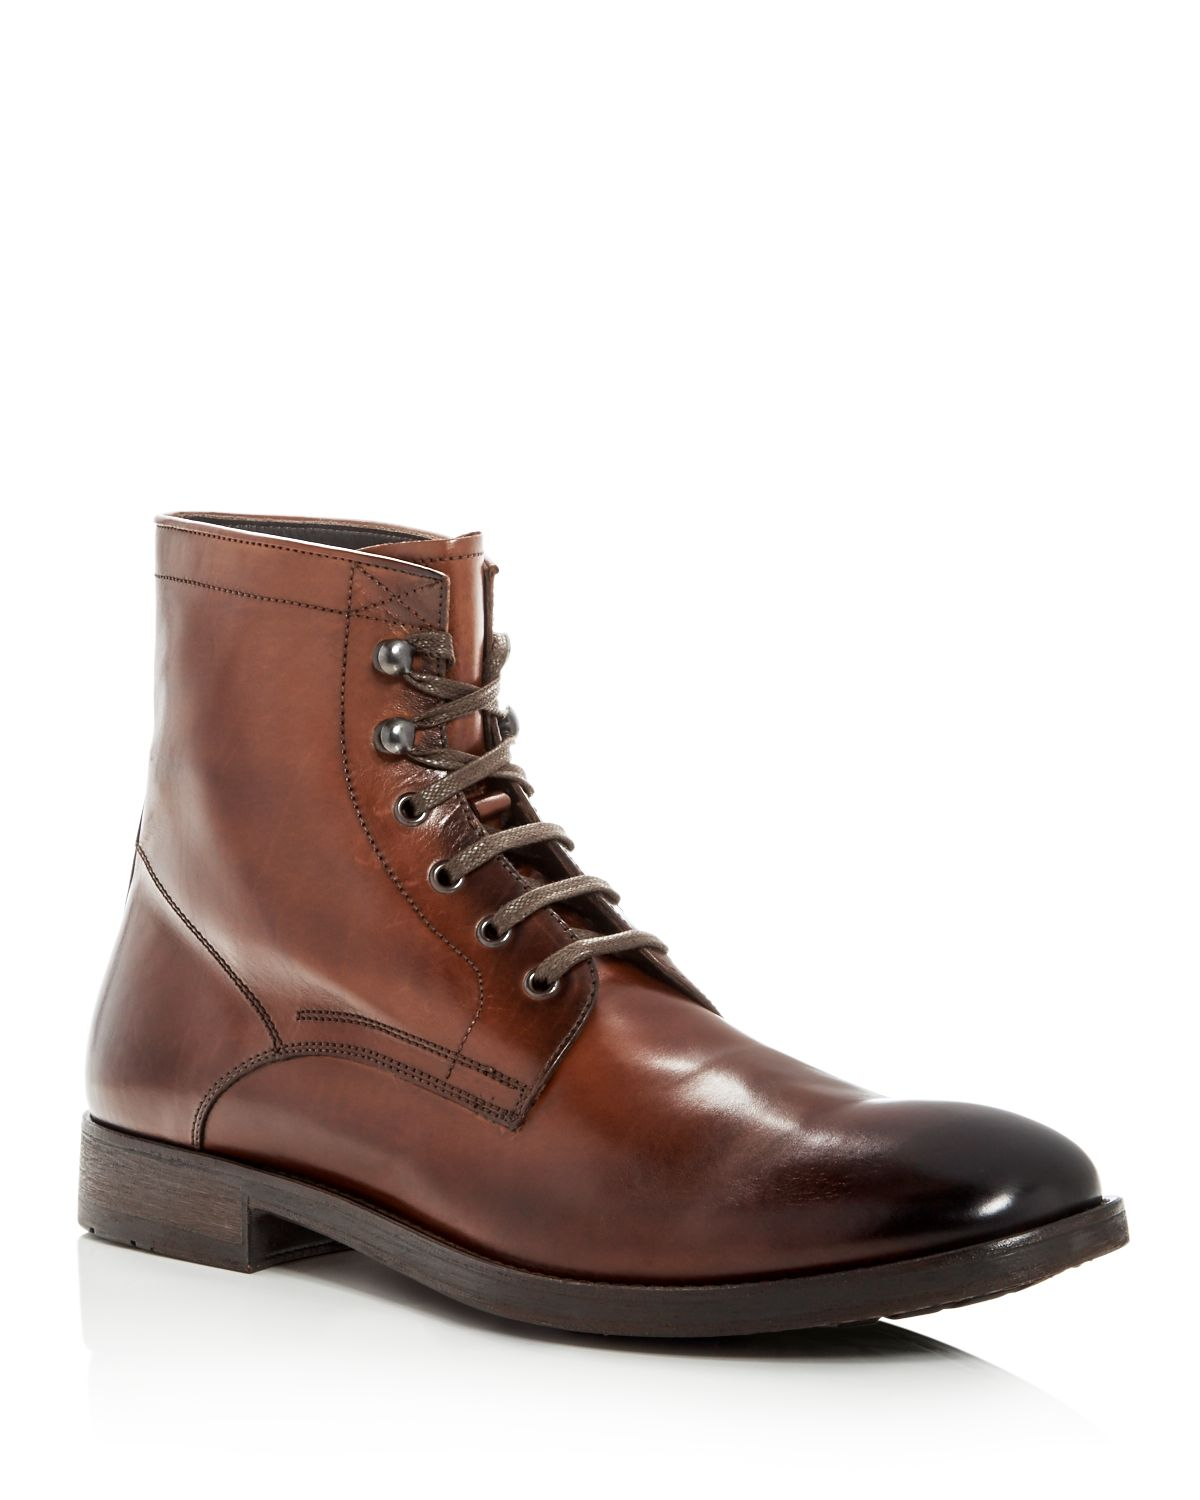 To Boot Men's Astoria Leather Boots